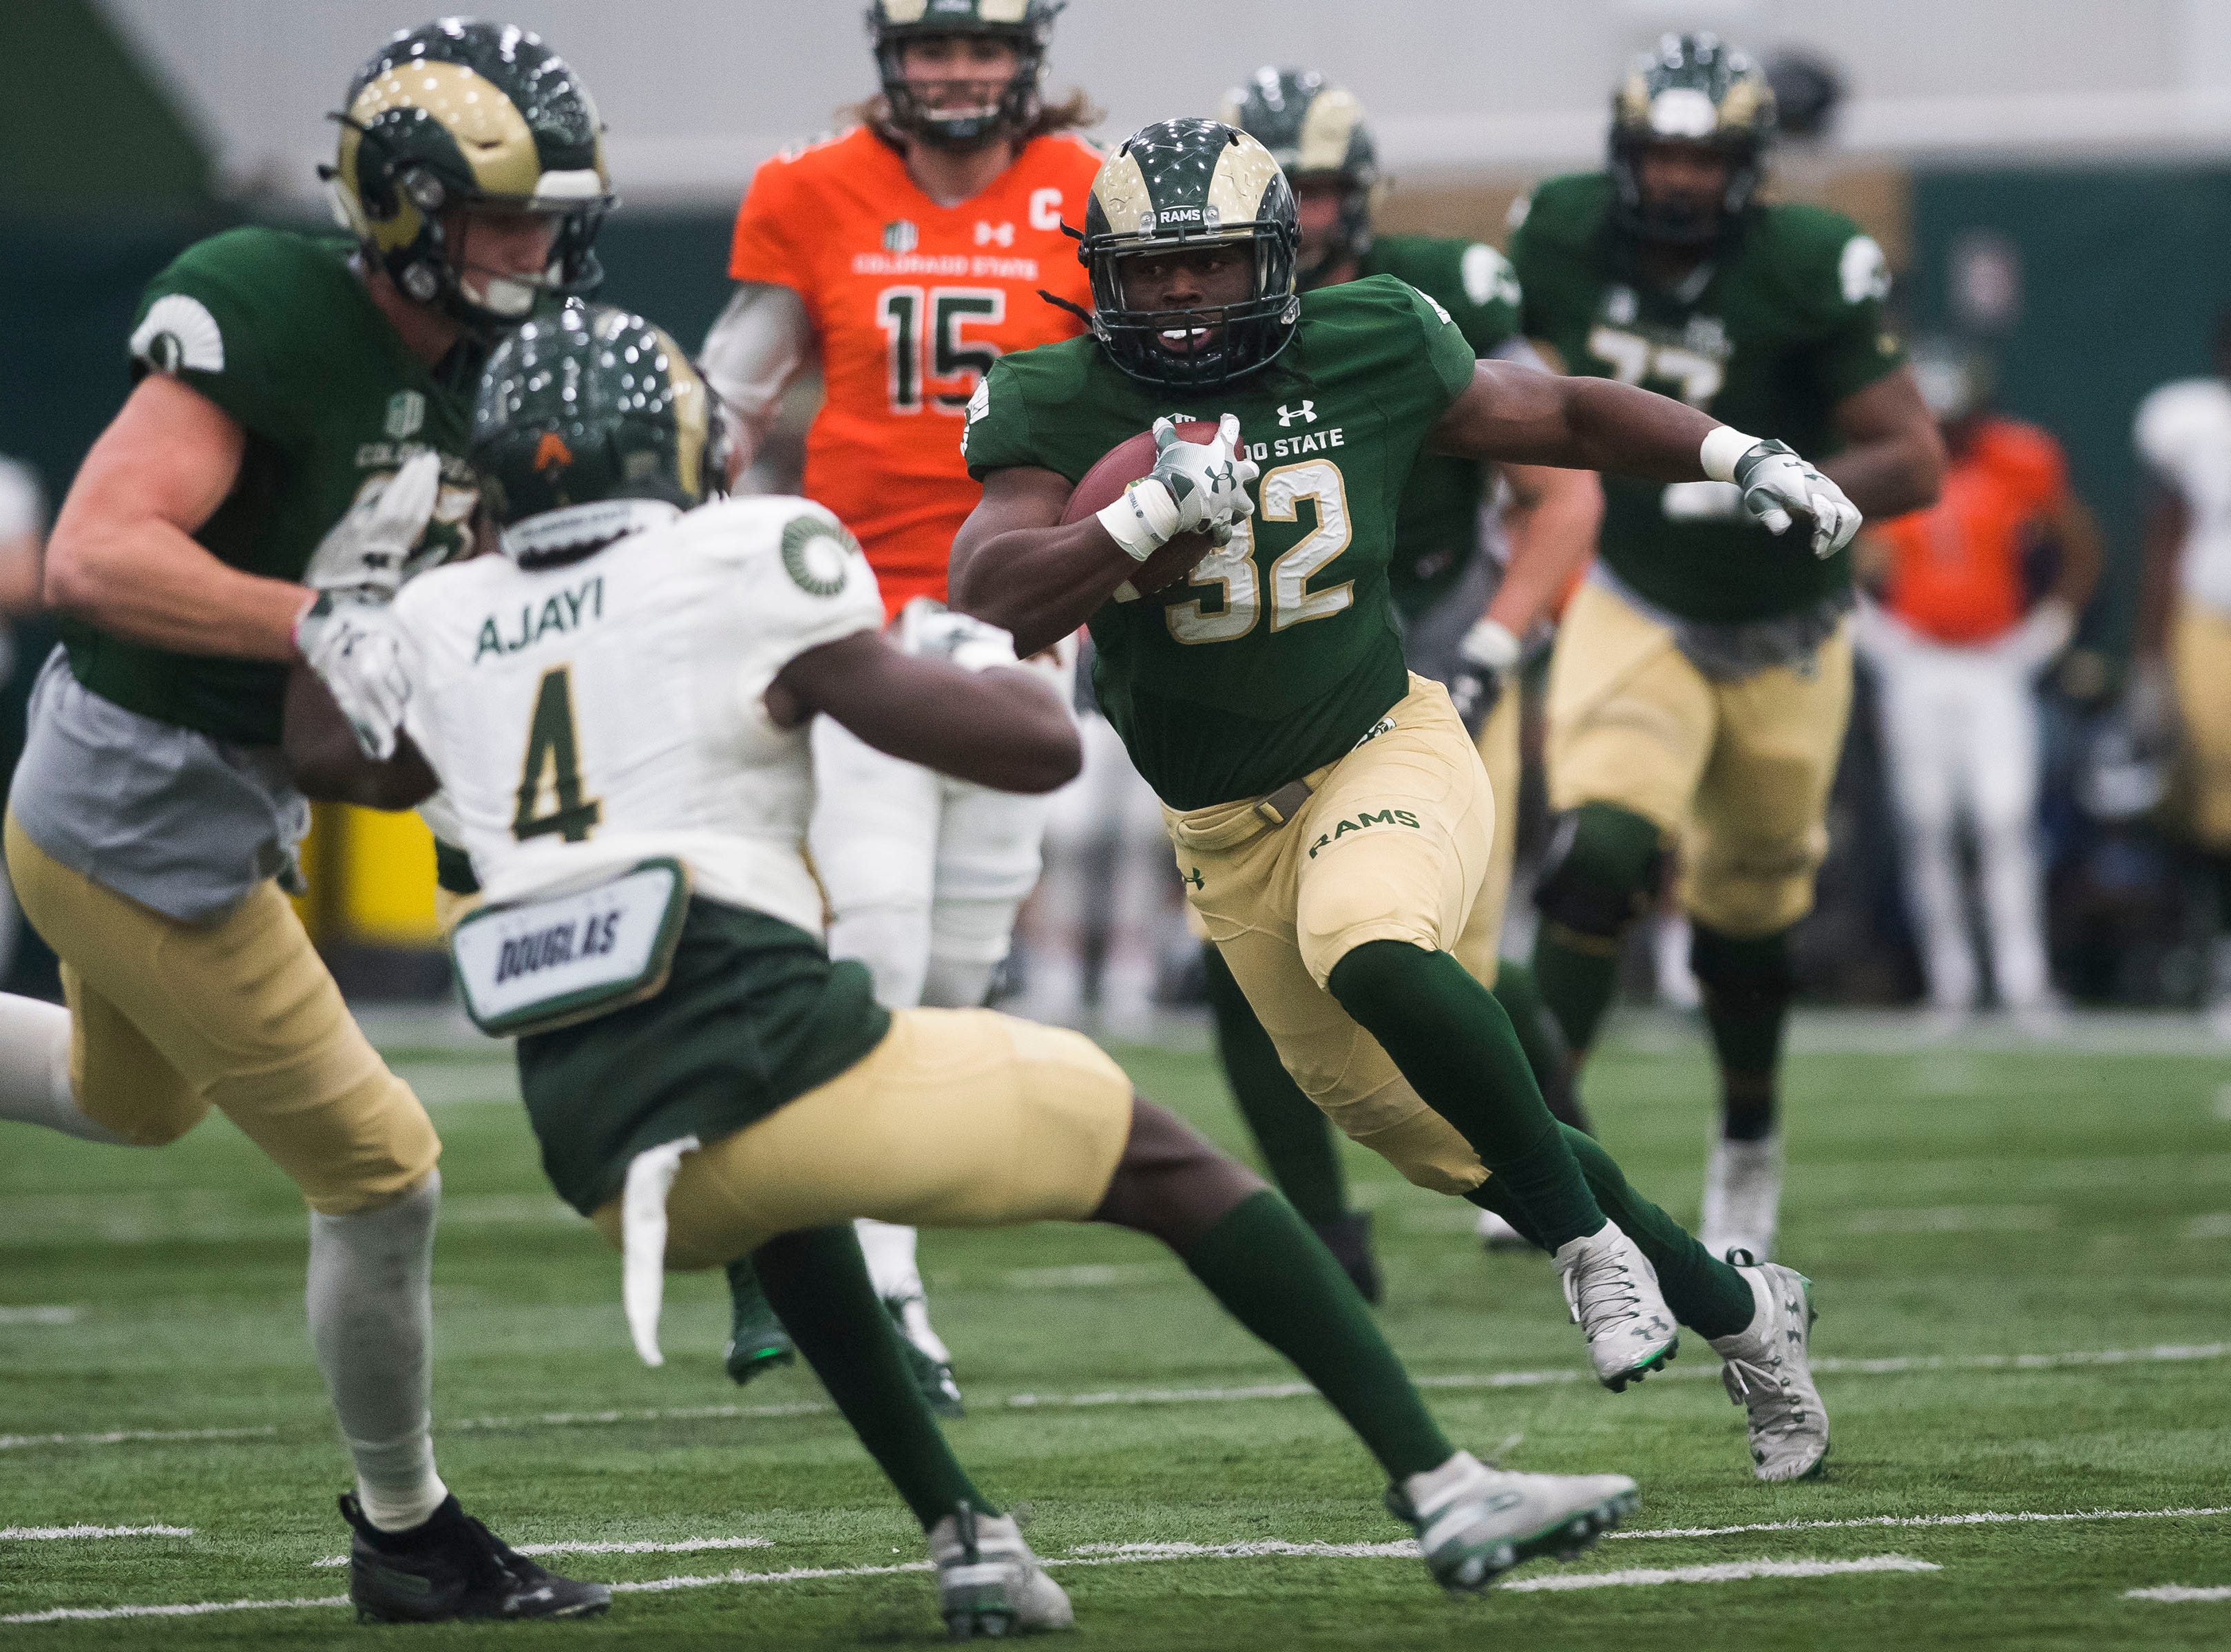 CSU junior running back Marcus McElrow (32) cuts behind a blocker during CSU's Spring game on Thursday, March 14, 2019, at their indoor practice facility in Fort Collins, Colo.